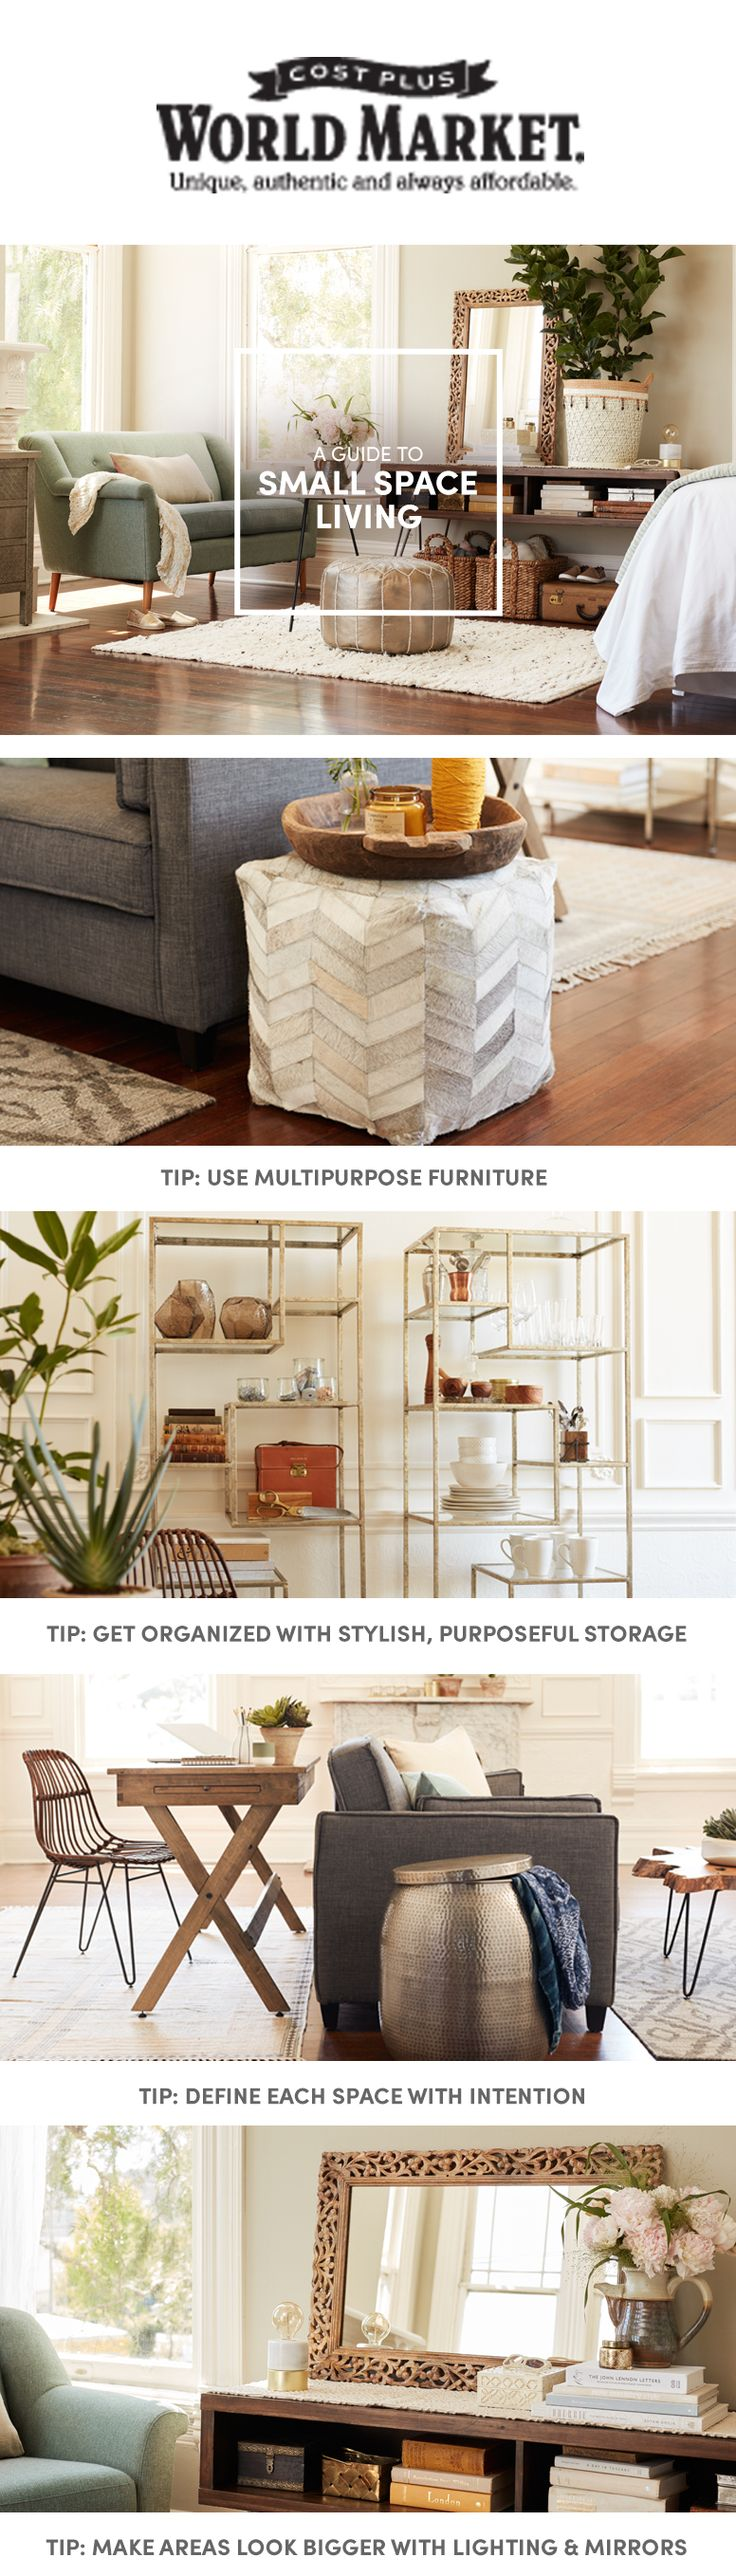 Small space design ideas small spaces huge inspiration see all our - With Our Small Spaces Living Guide You Ll Find Tips And Tricks To Bring Big Ideas Into Every Space Costplus Worldmarket Small Space Living